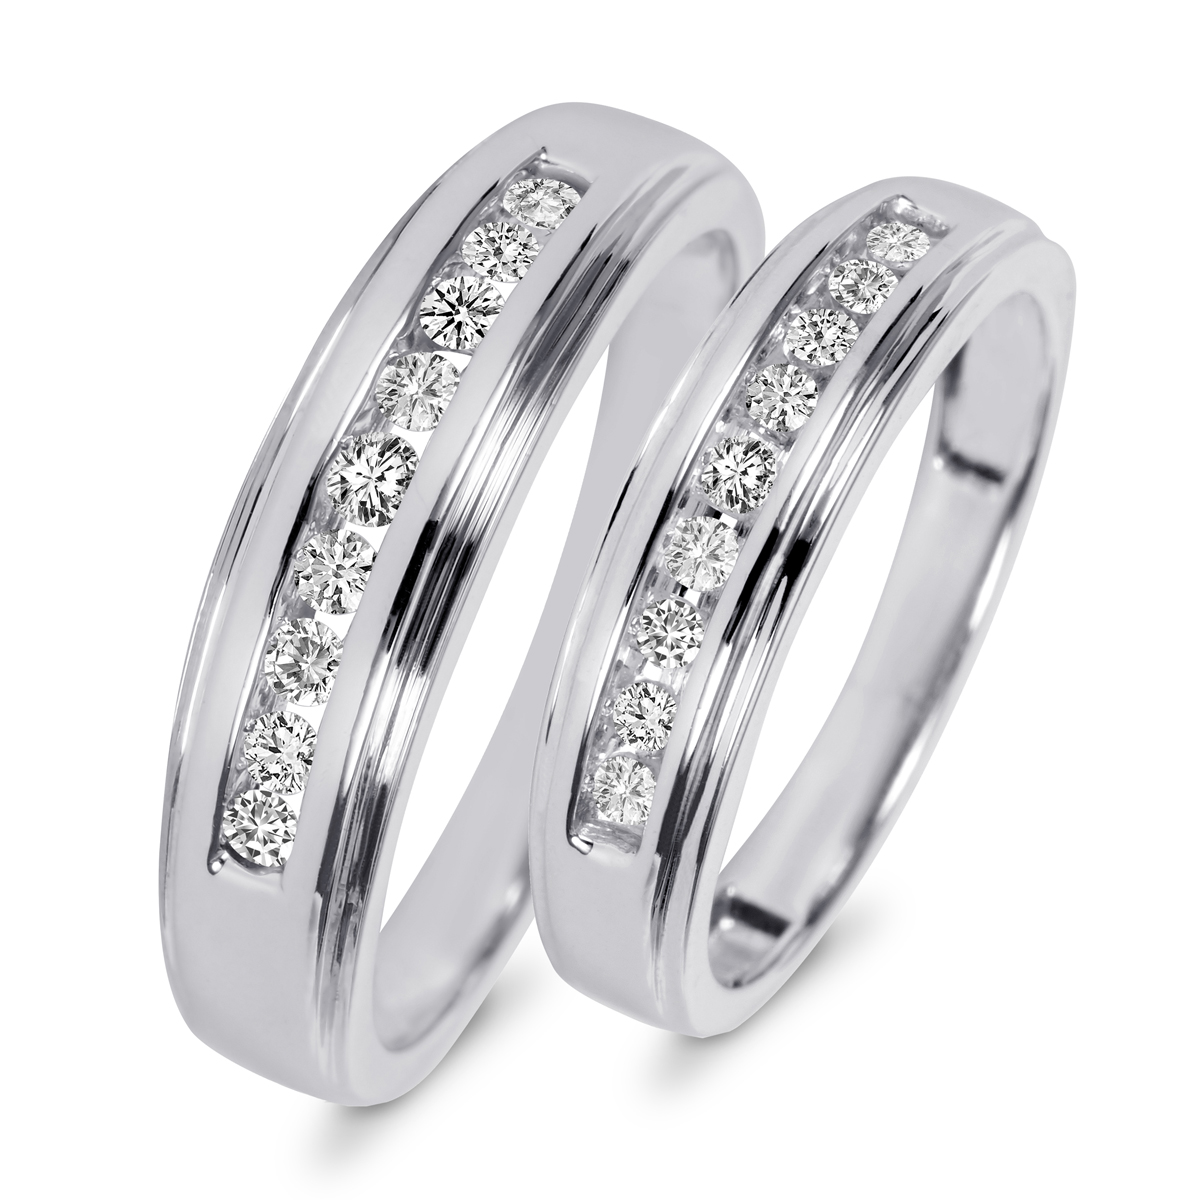 and hers wedding band set 10k white gold my trio rings wb501w10k